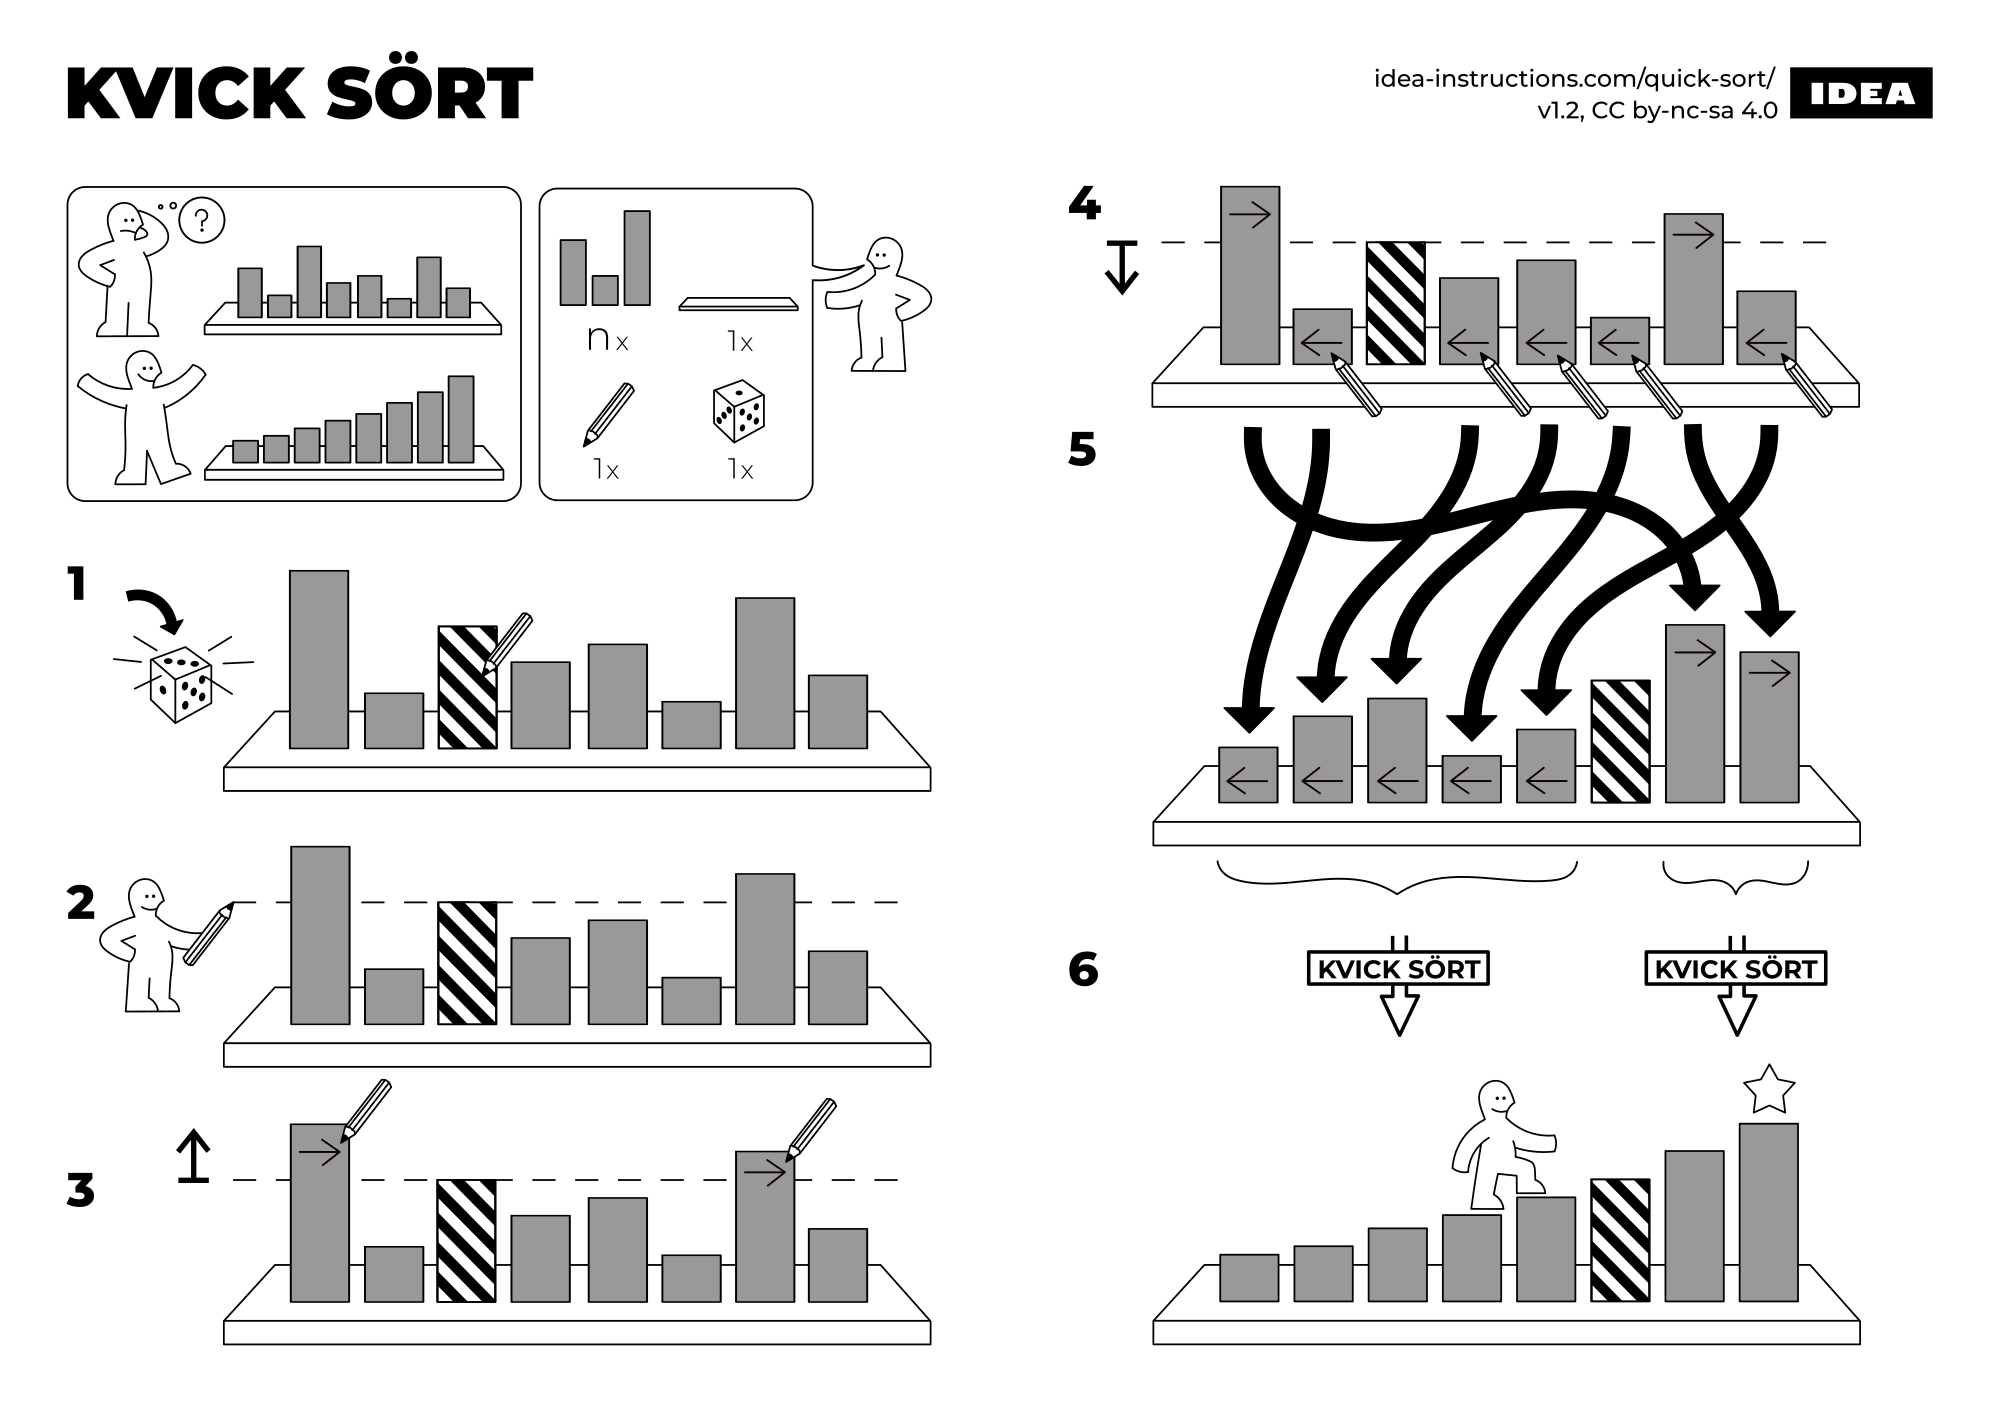 Ilration Quicksort Algorithm Ilrated In The Style Of Ikea Furniture Assembly Instructions